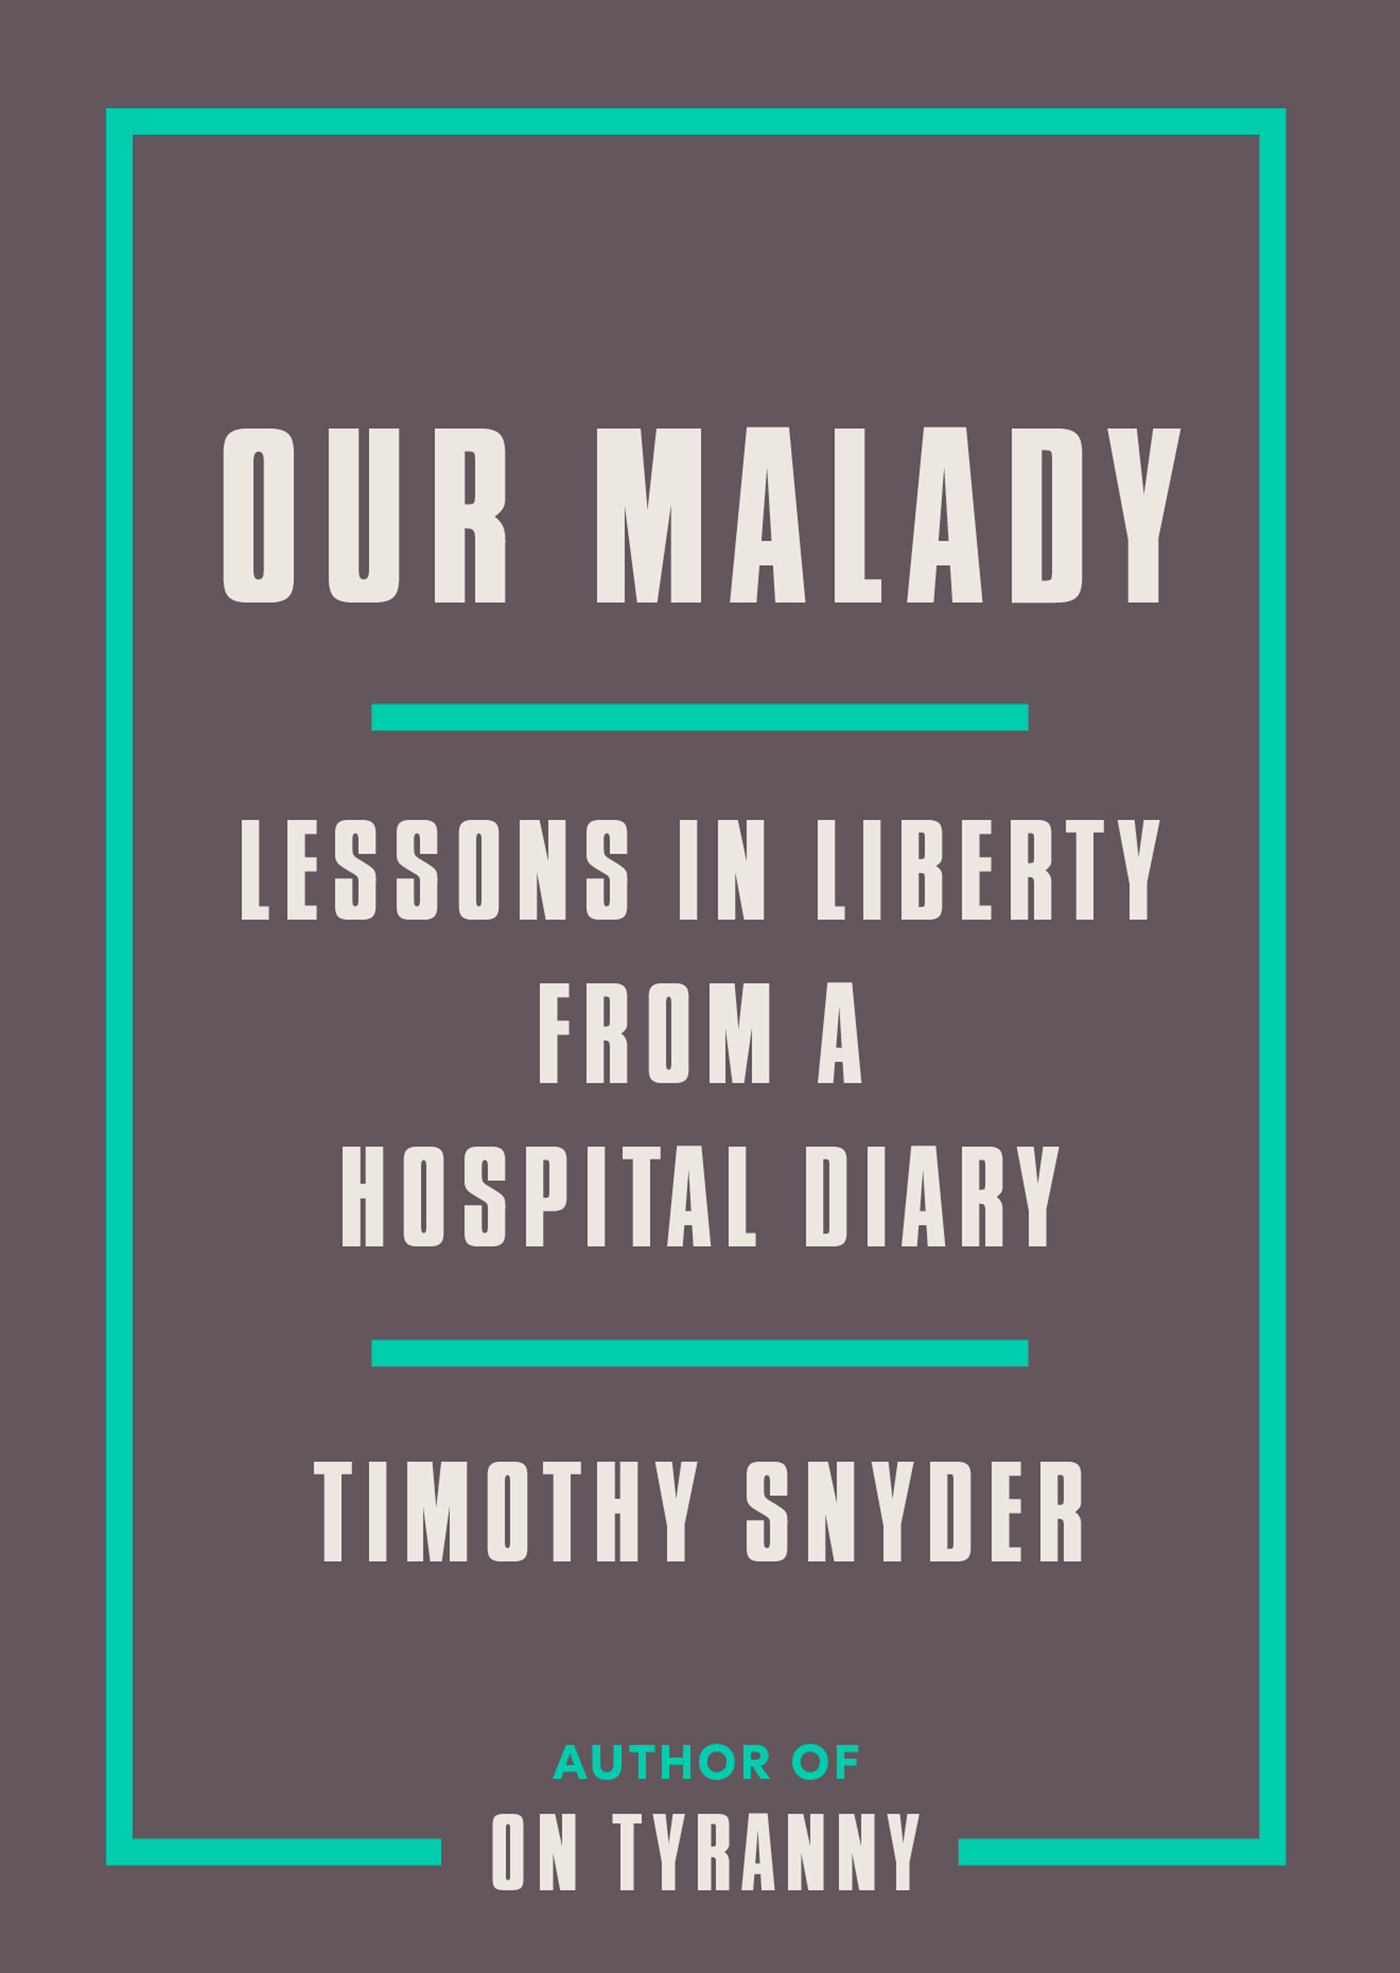 Our Malady book cover